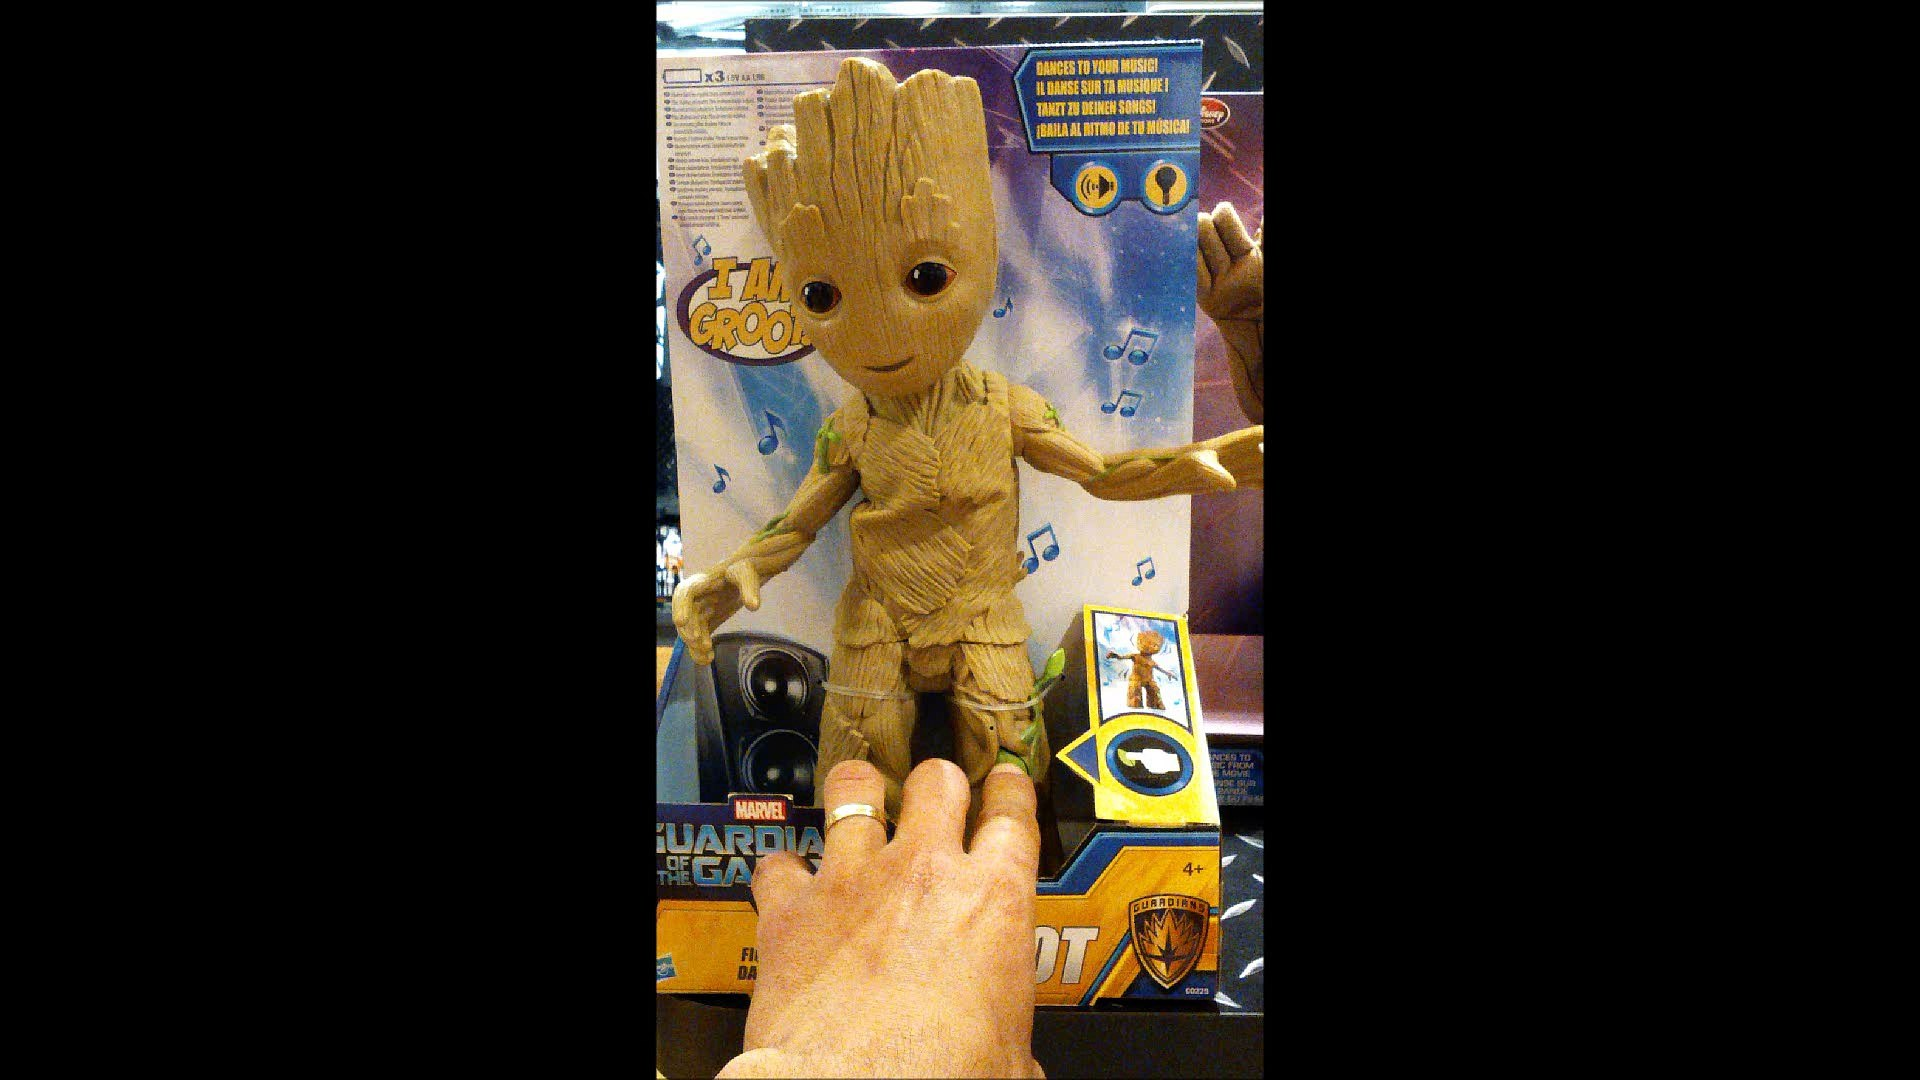 Les Gardiens de la Galaxie 2 Baby Groot Figurine Interactive Marvel Jouet Toy Review Disney Hasbro